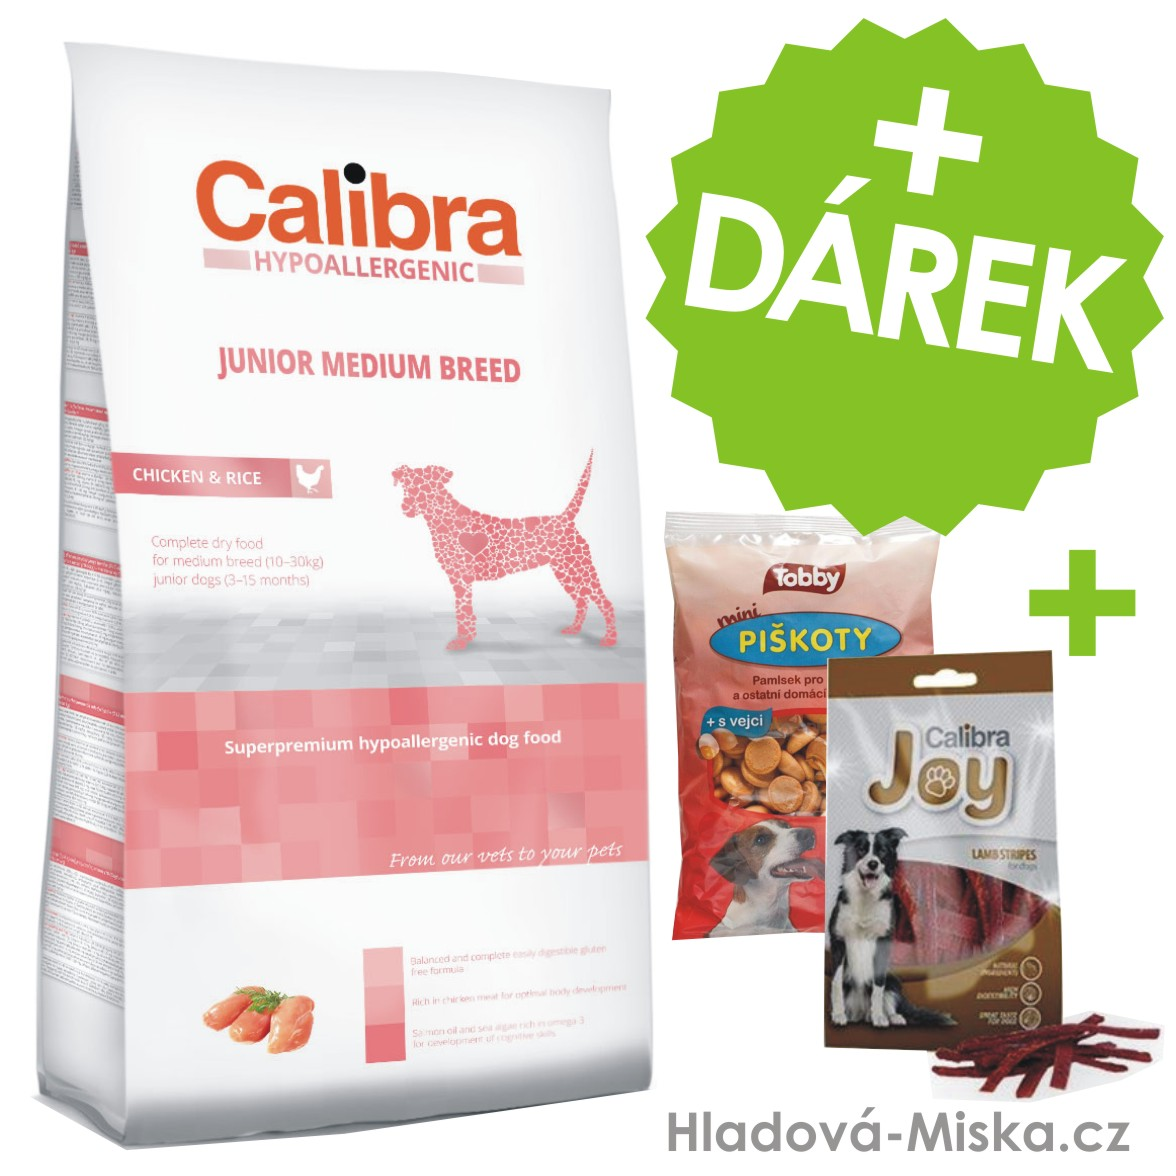 Calibra Dog HA Junior Medium Breed Chicken 14 kg+ZDARMA masové pamlsky a piškoty